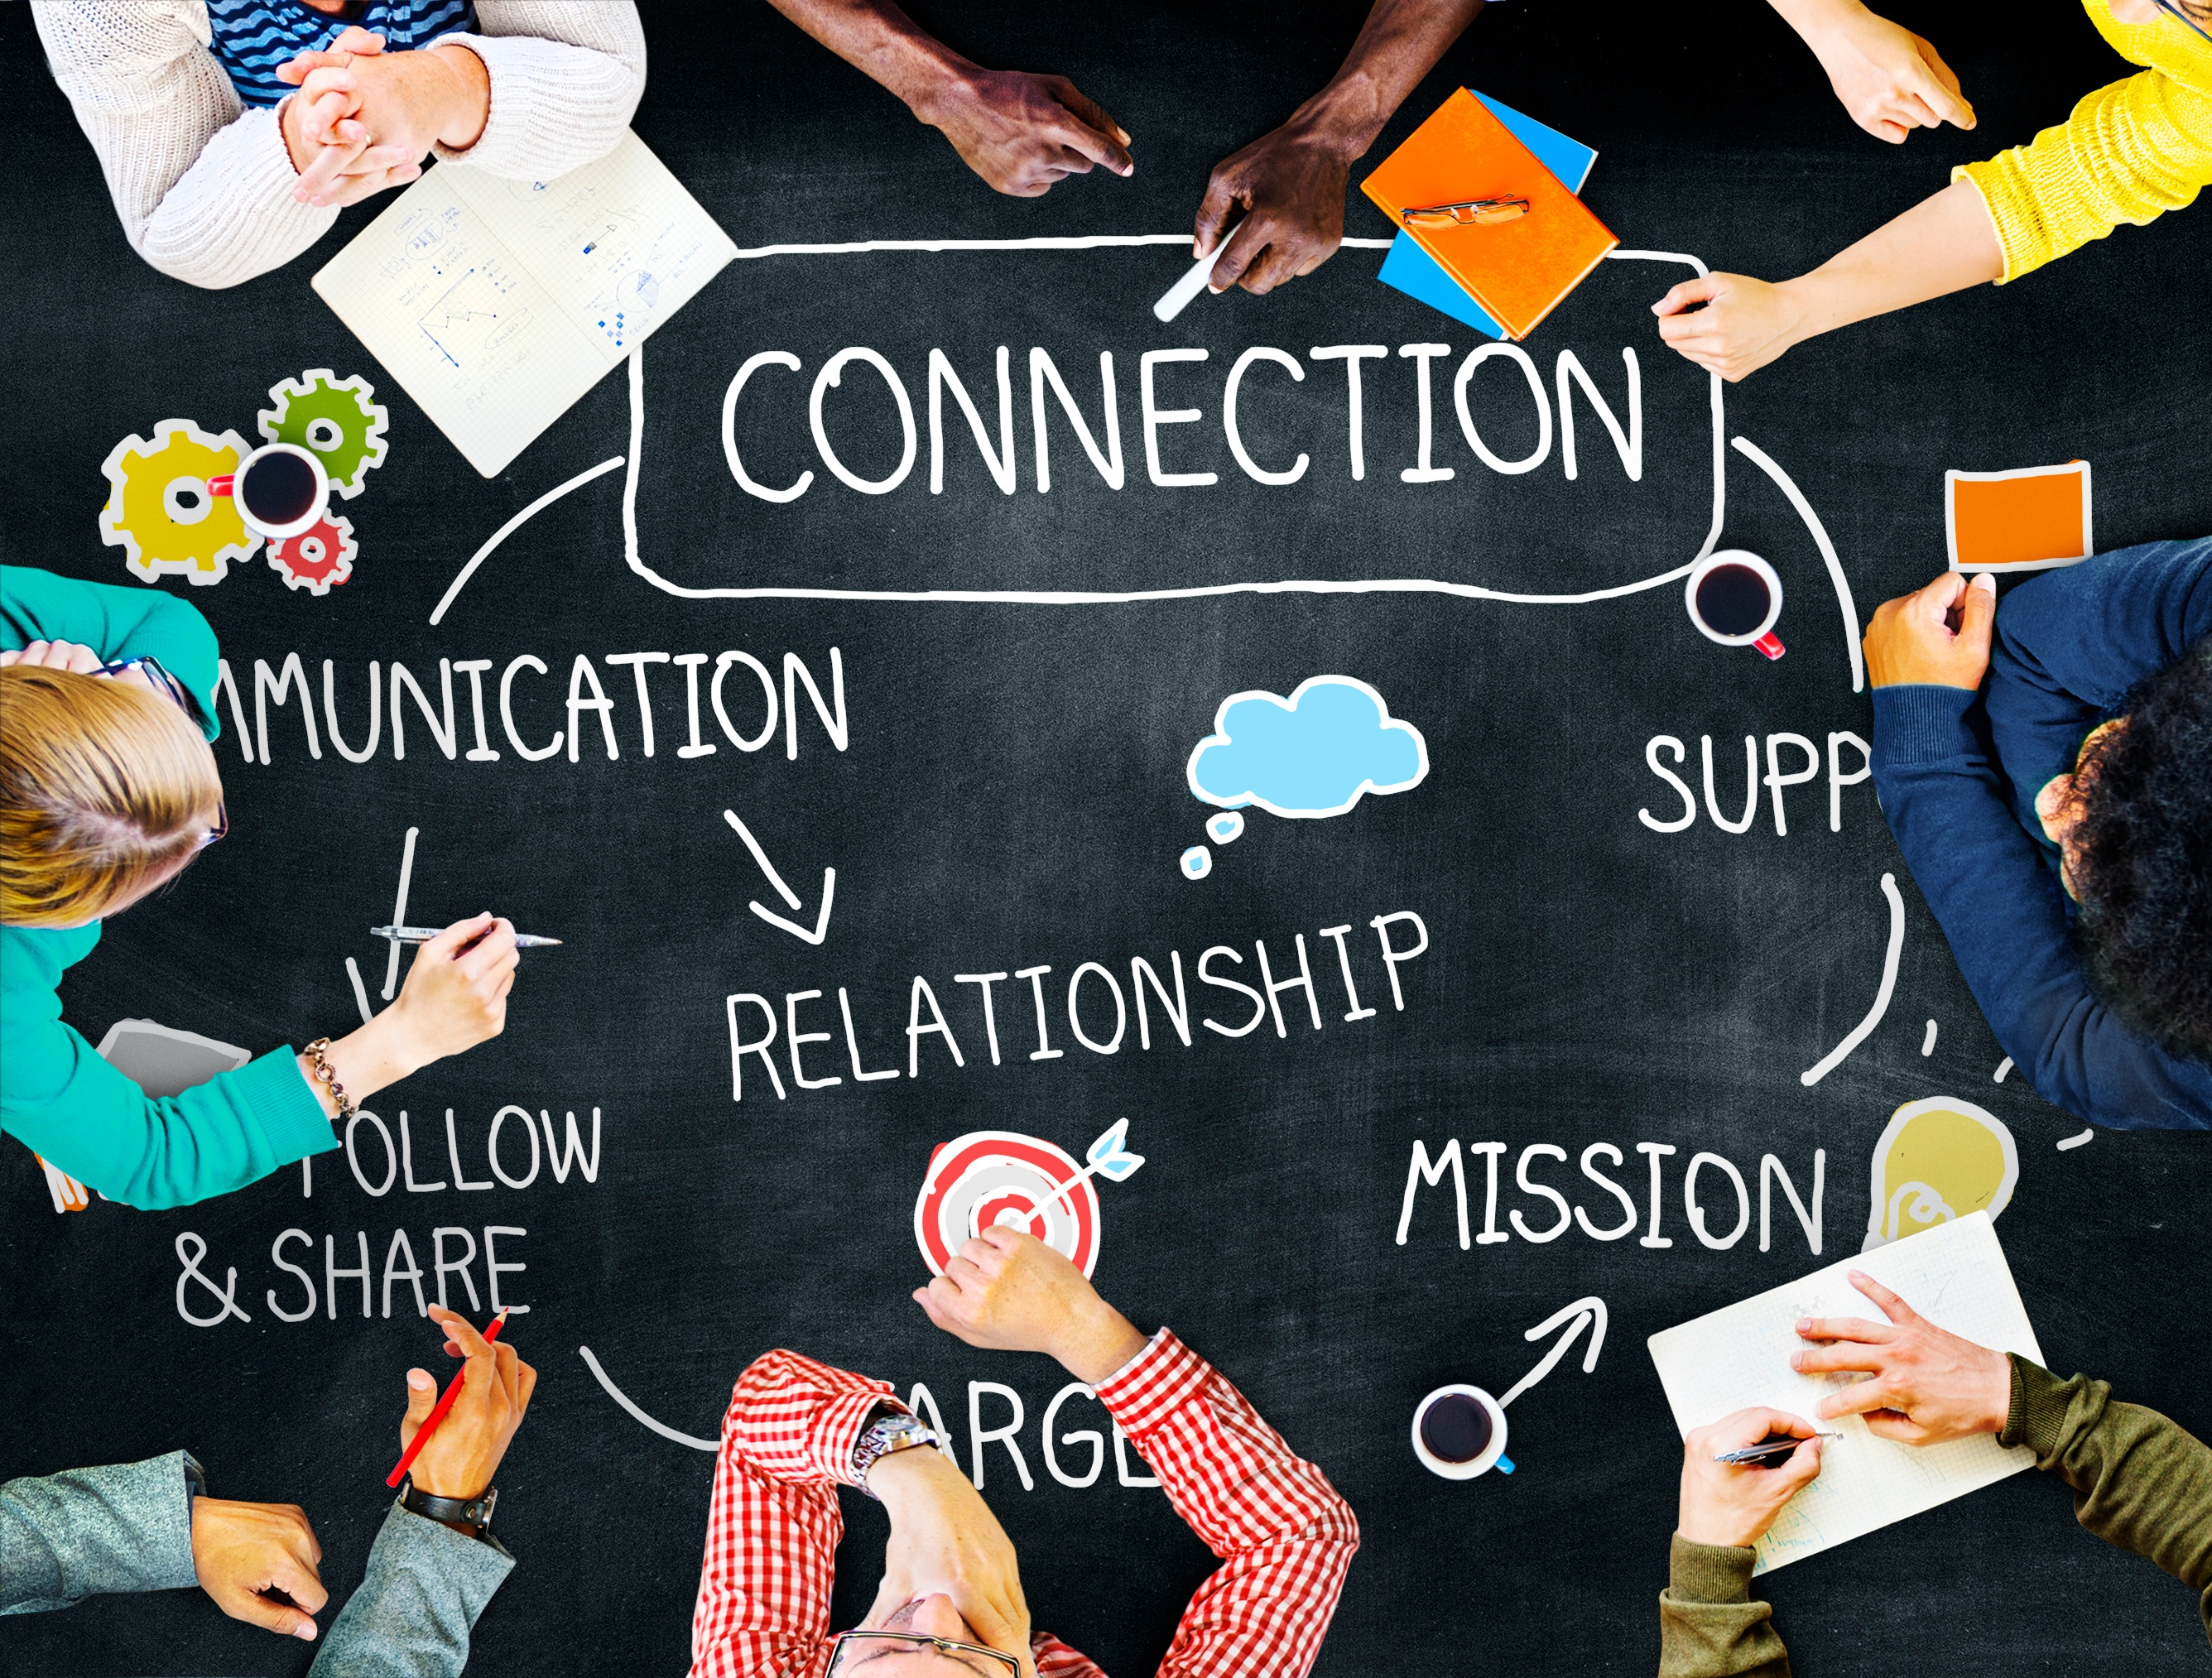 Connection-Strategy-ThinkstockPhotos-481705090.jpg